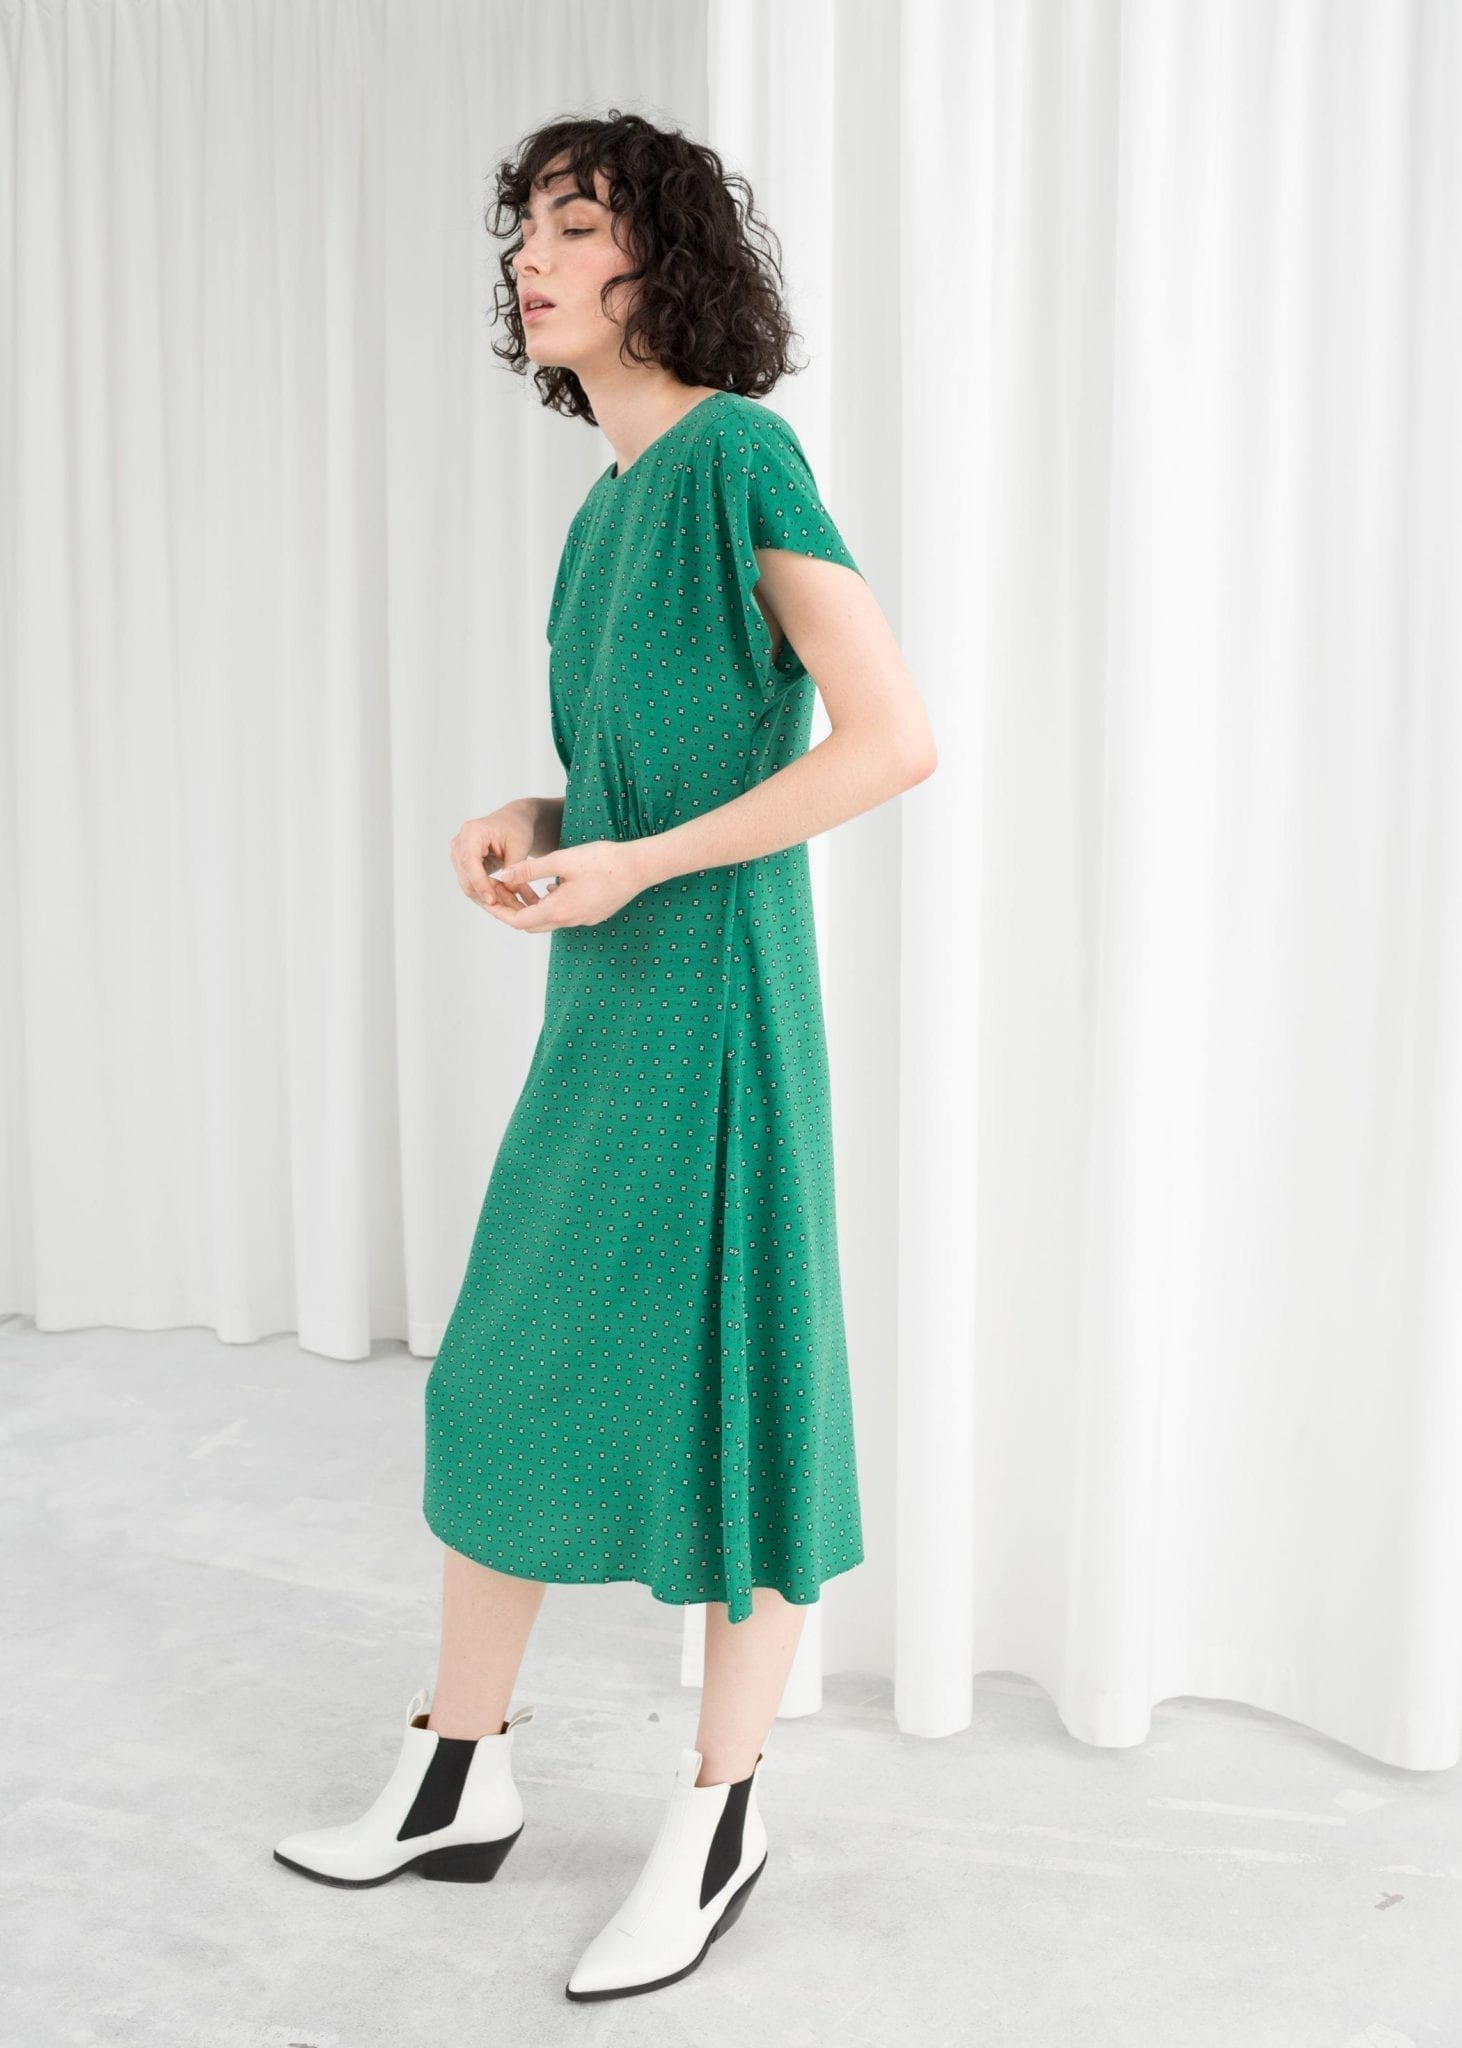 b6dab7903b3a   OTHER STORIES Sleeved Green Dress - We Select Dresses